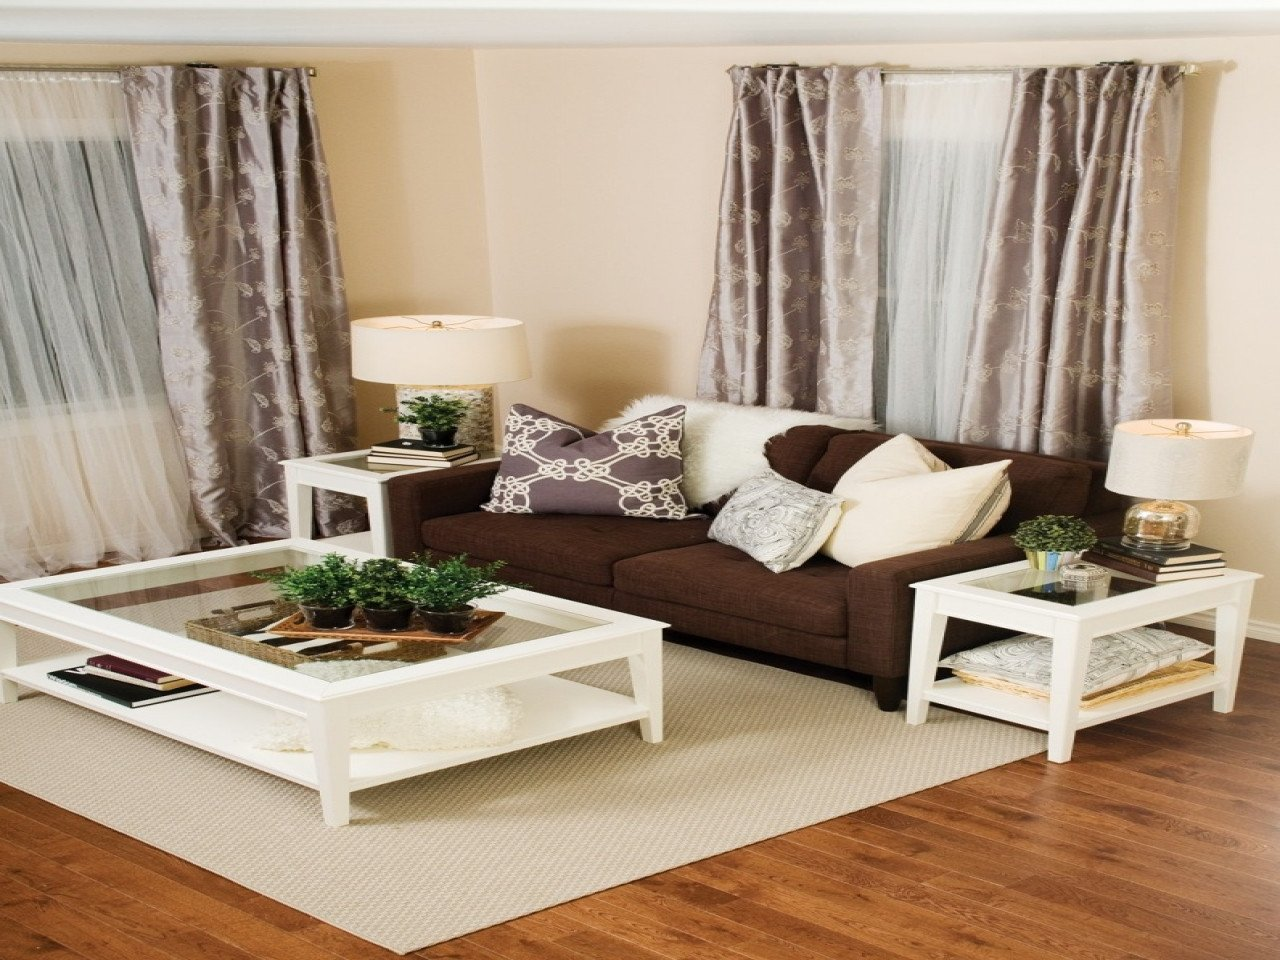 Brown sofa Living Room Decor Furniture Decorating Ideas Living Room Decor with Brown